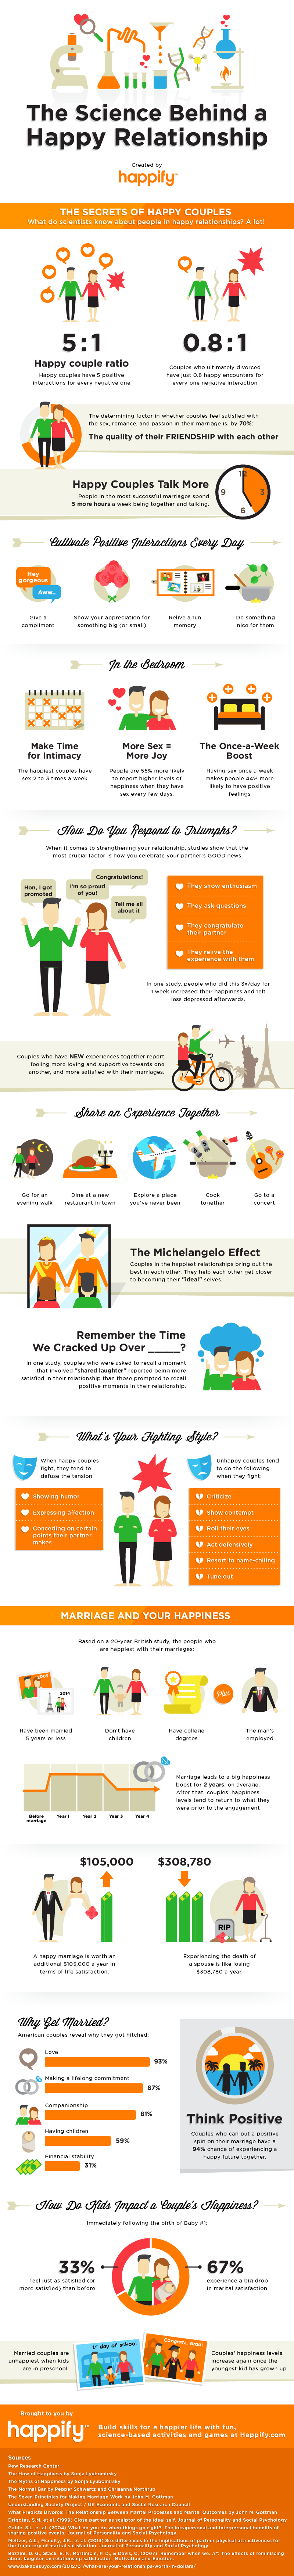 The Science Behind a Happy Relationship [Infographic]